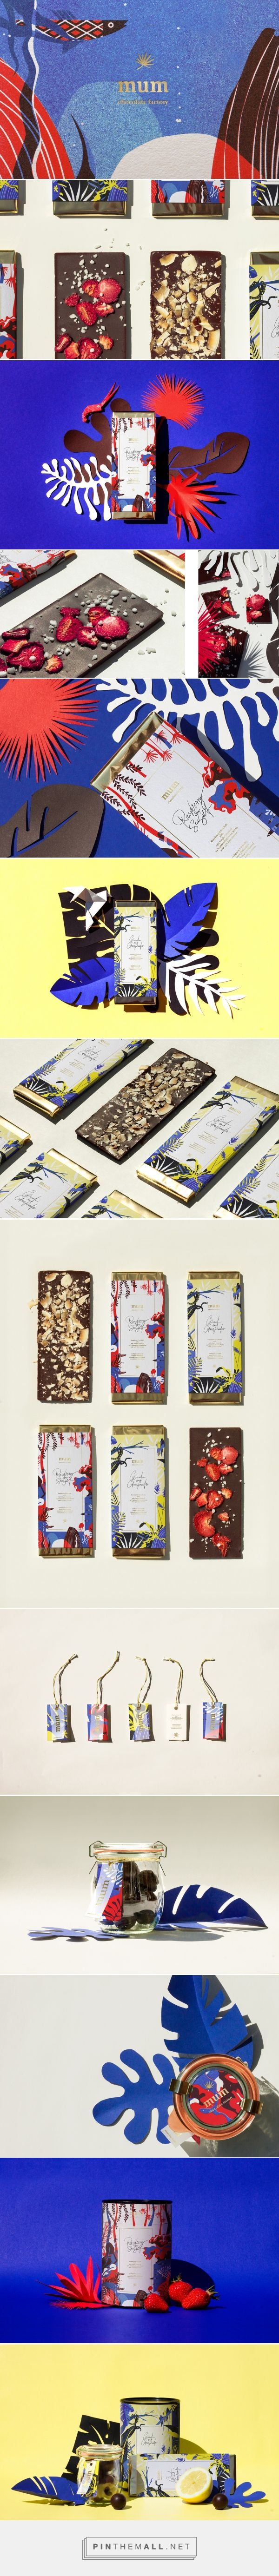 Mum concept packaging of the world creative package design gallery http